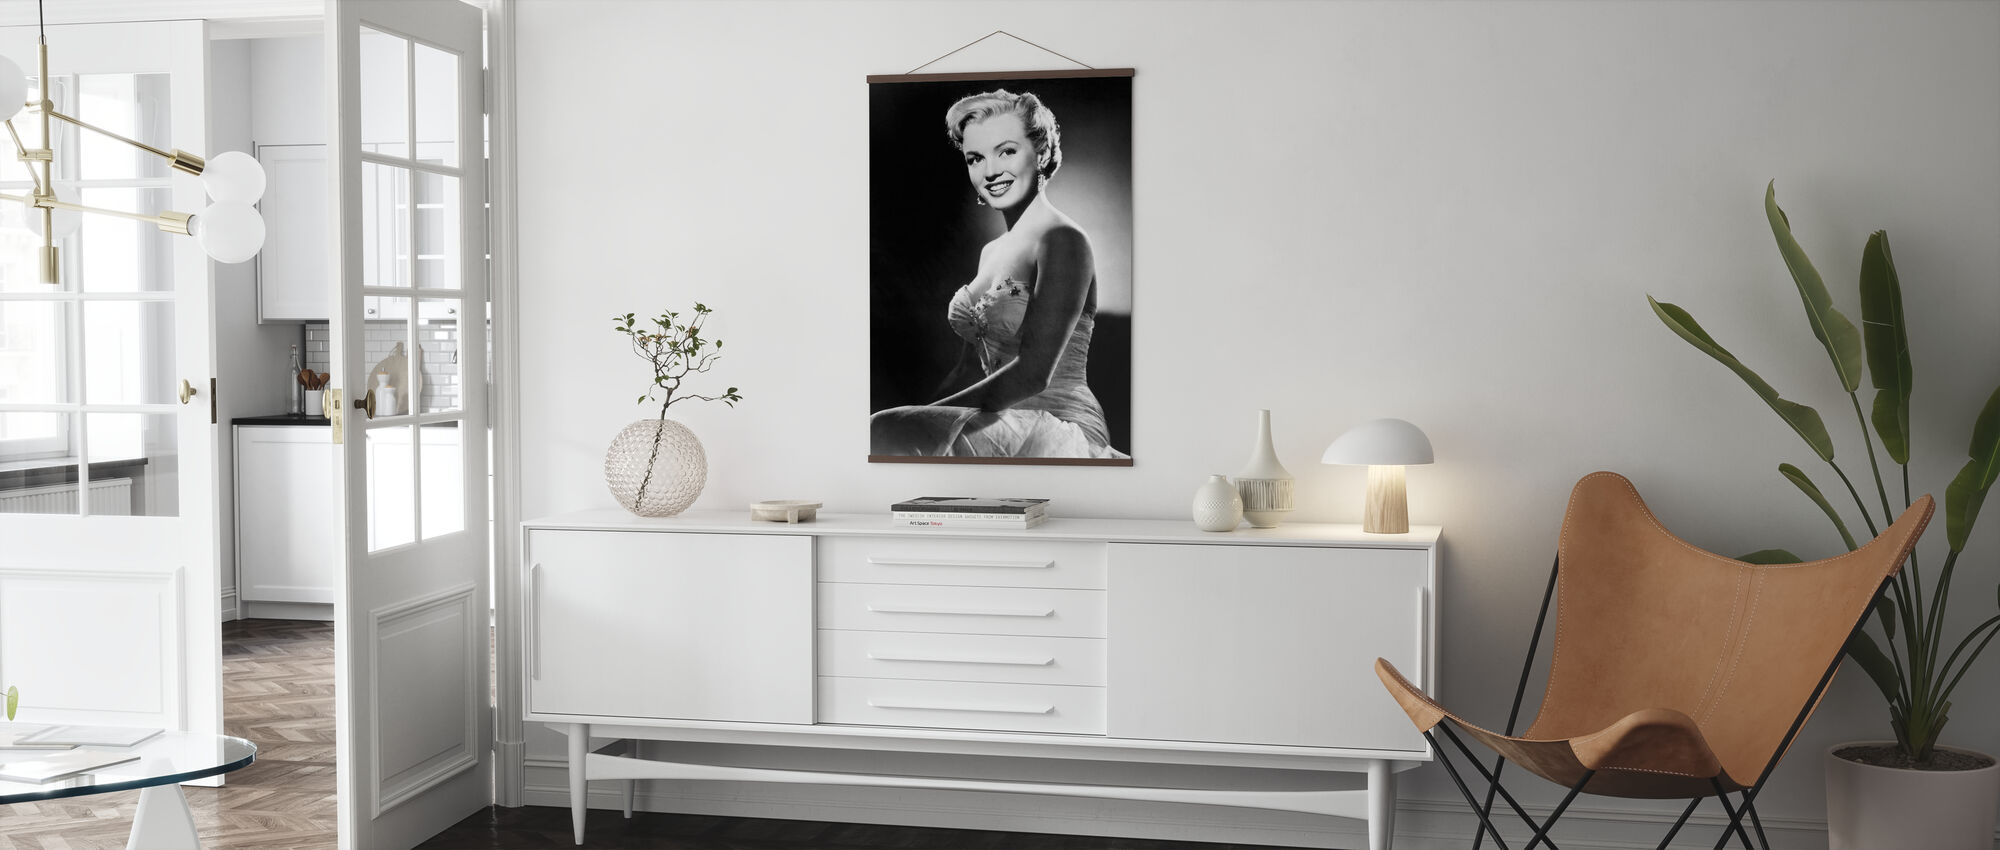 All about Eve - Poster - Living Room